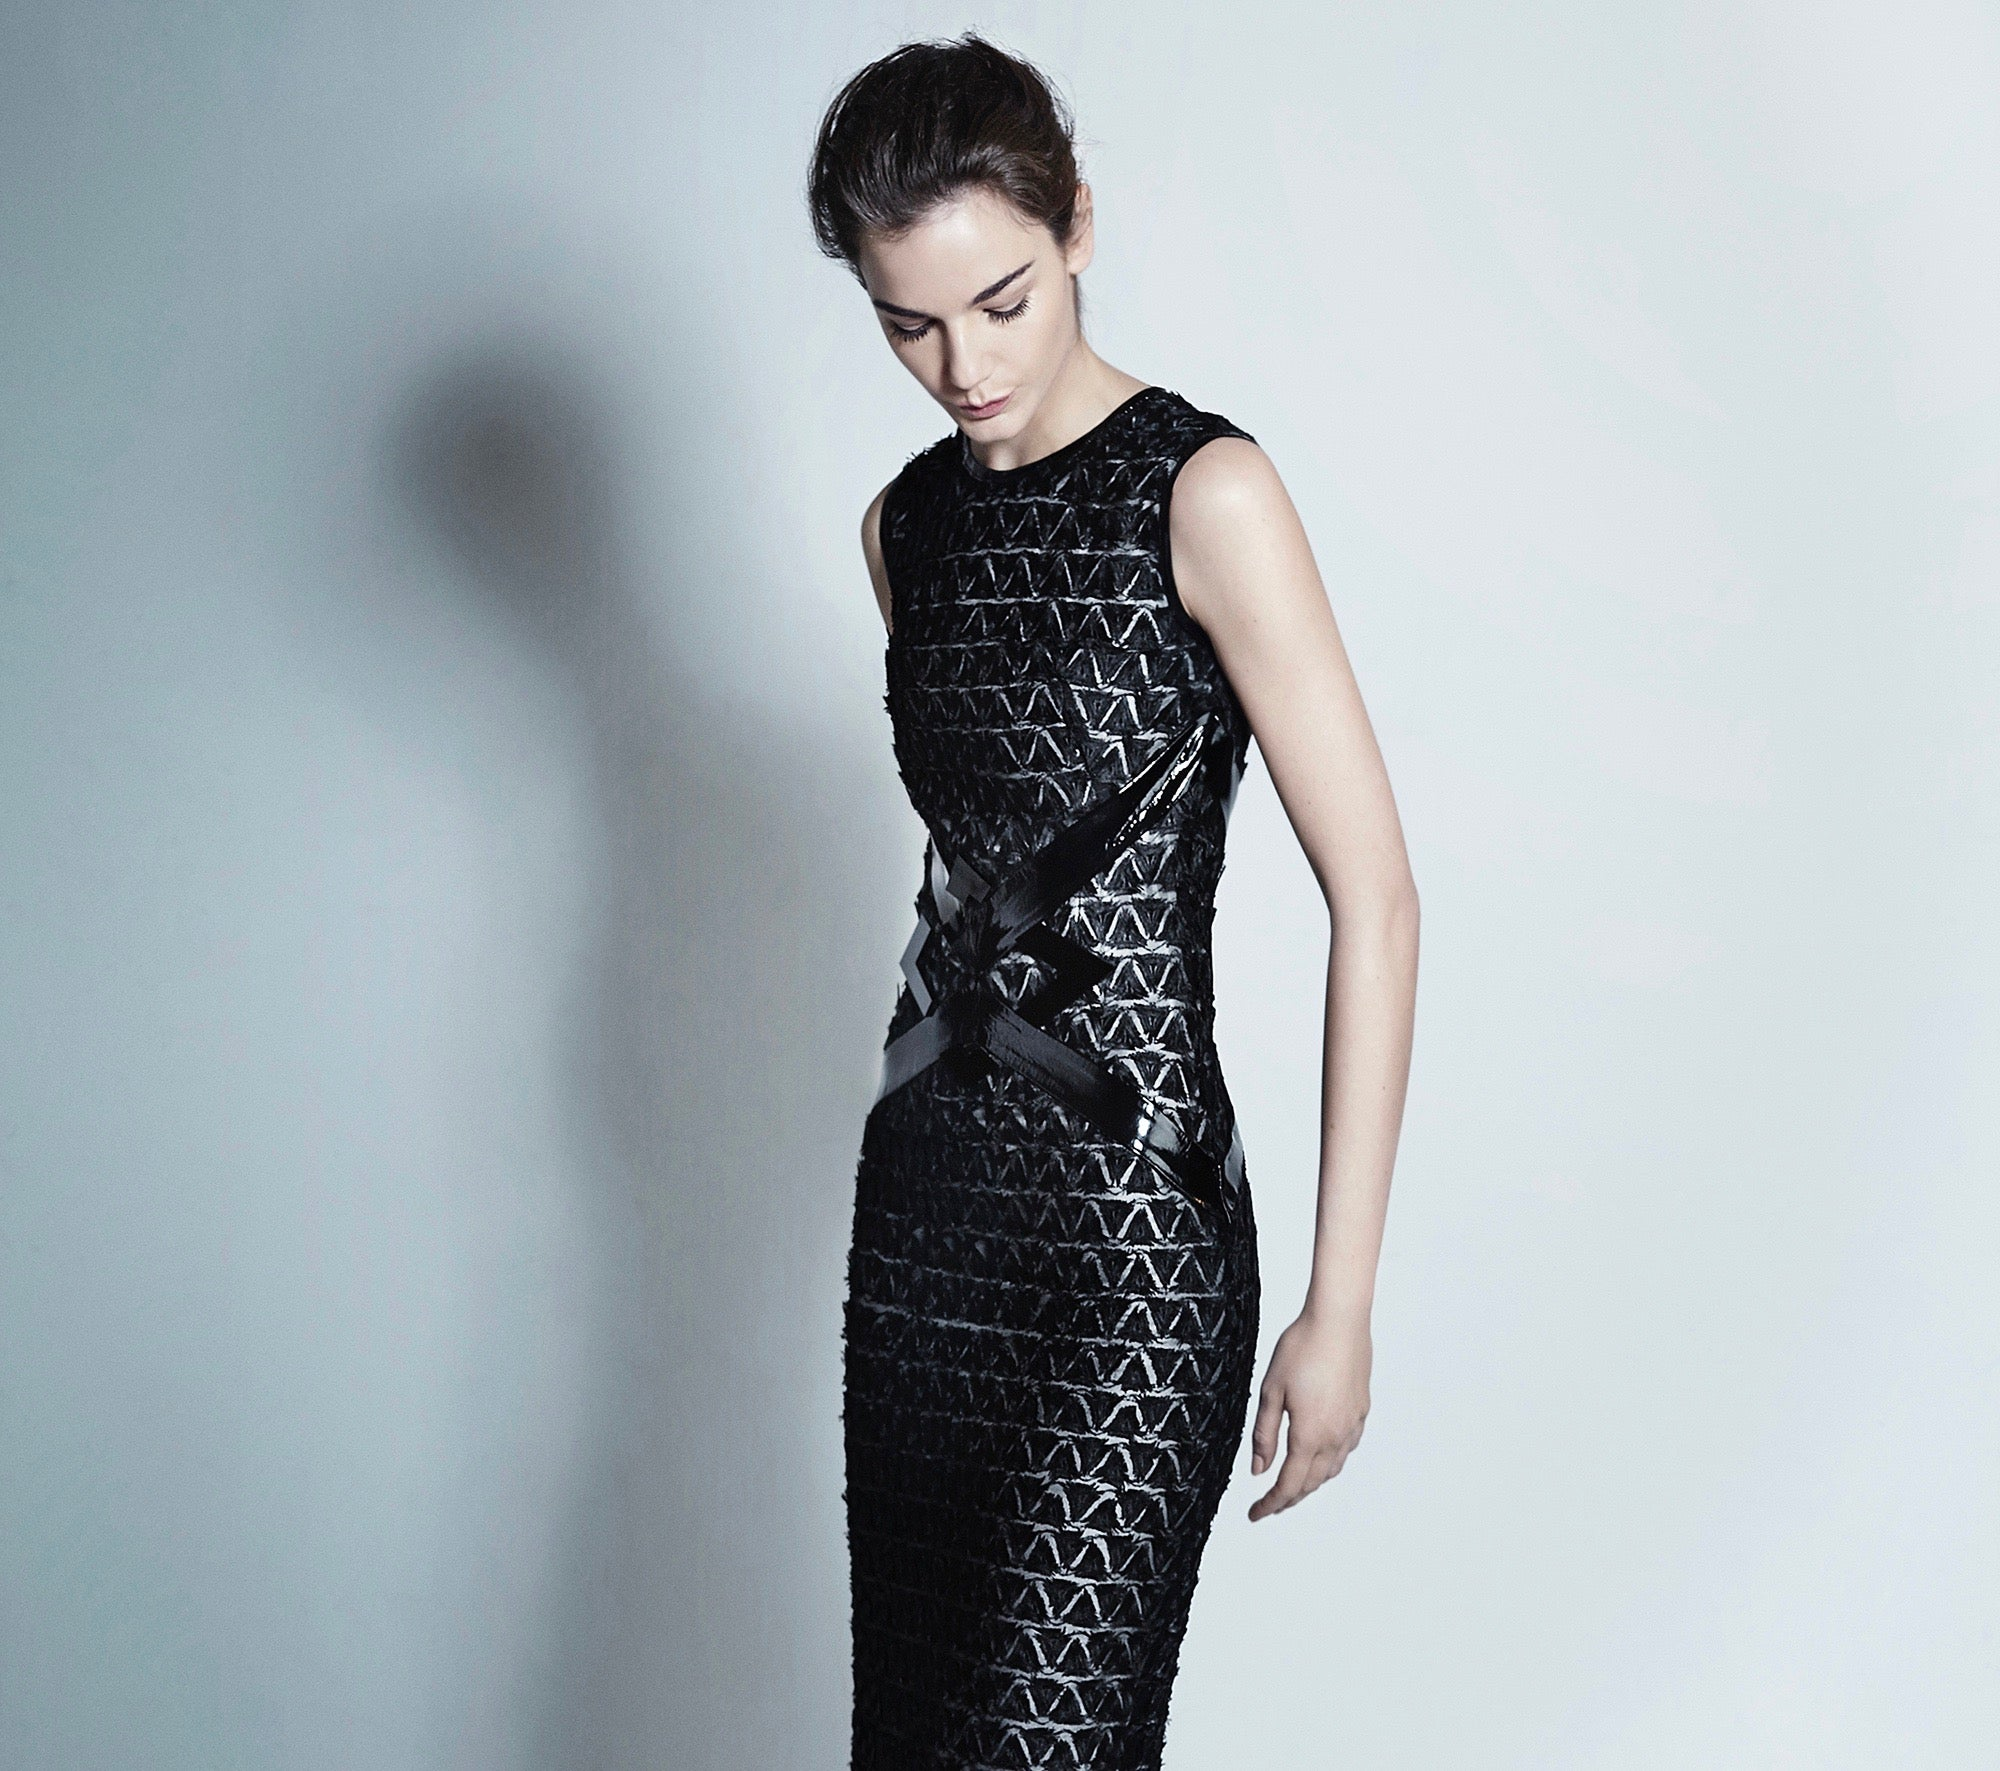 Sleeveless, over the knee dress crafted from Italian geometric lace with leather details